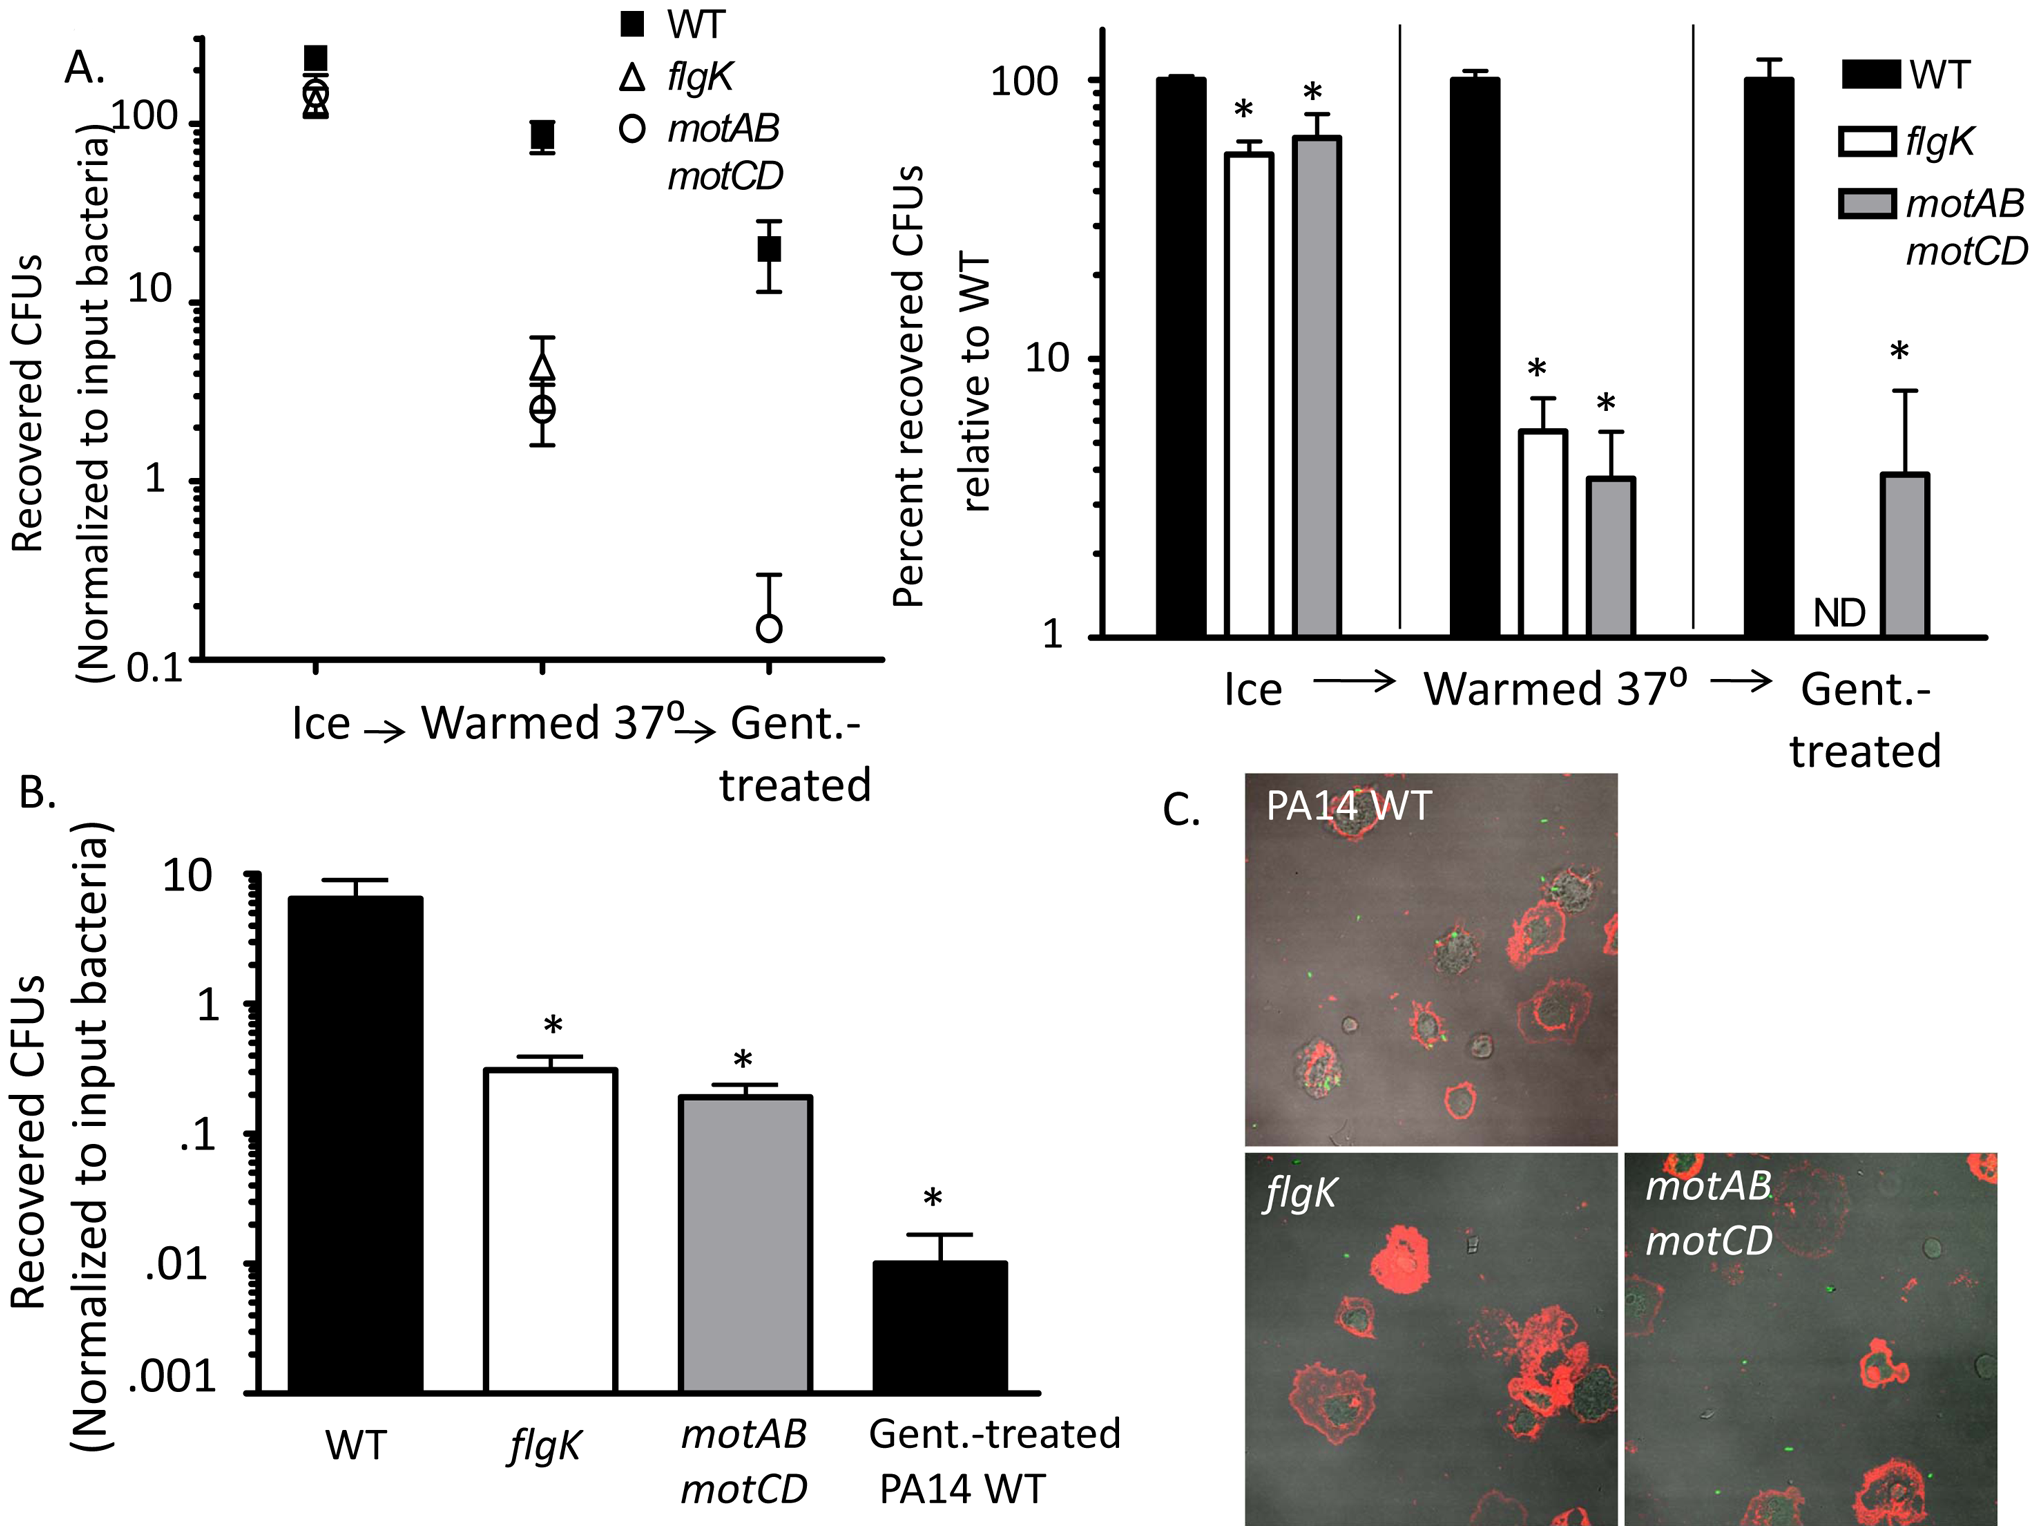 Flagellar motility enhances both the association and the uptake of bacteria by phagocytes.